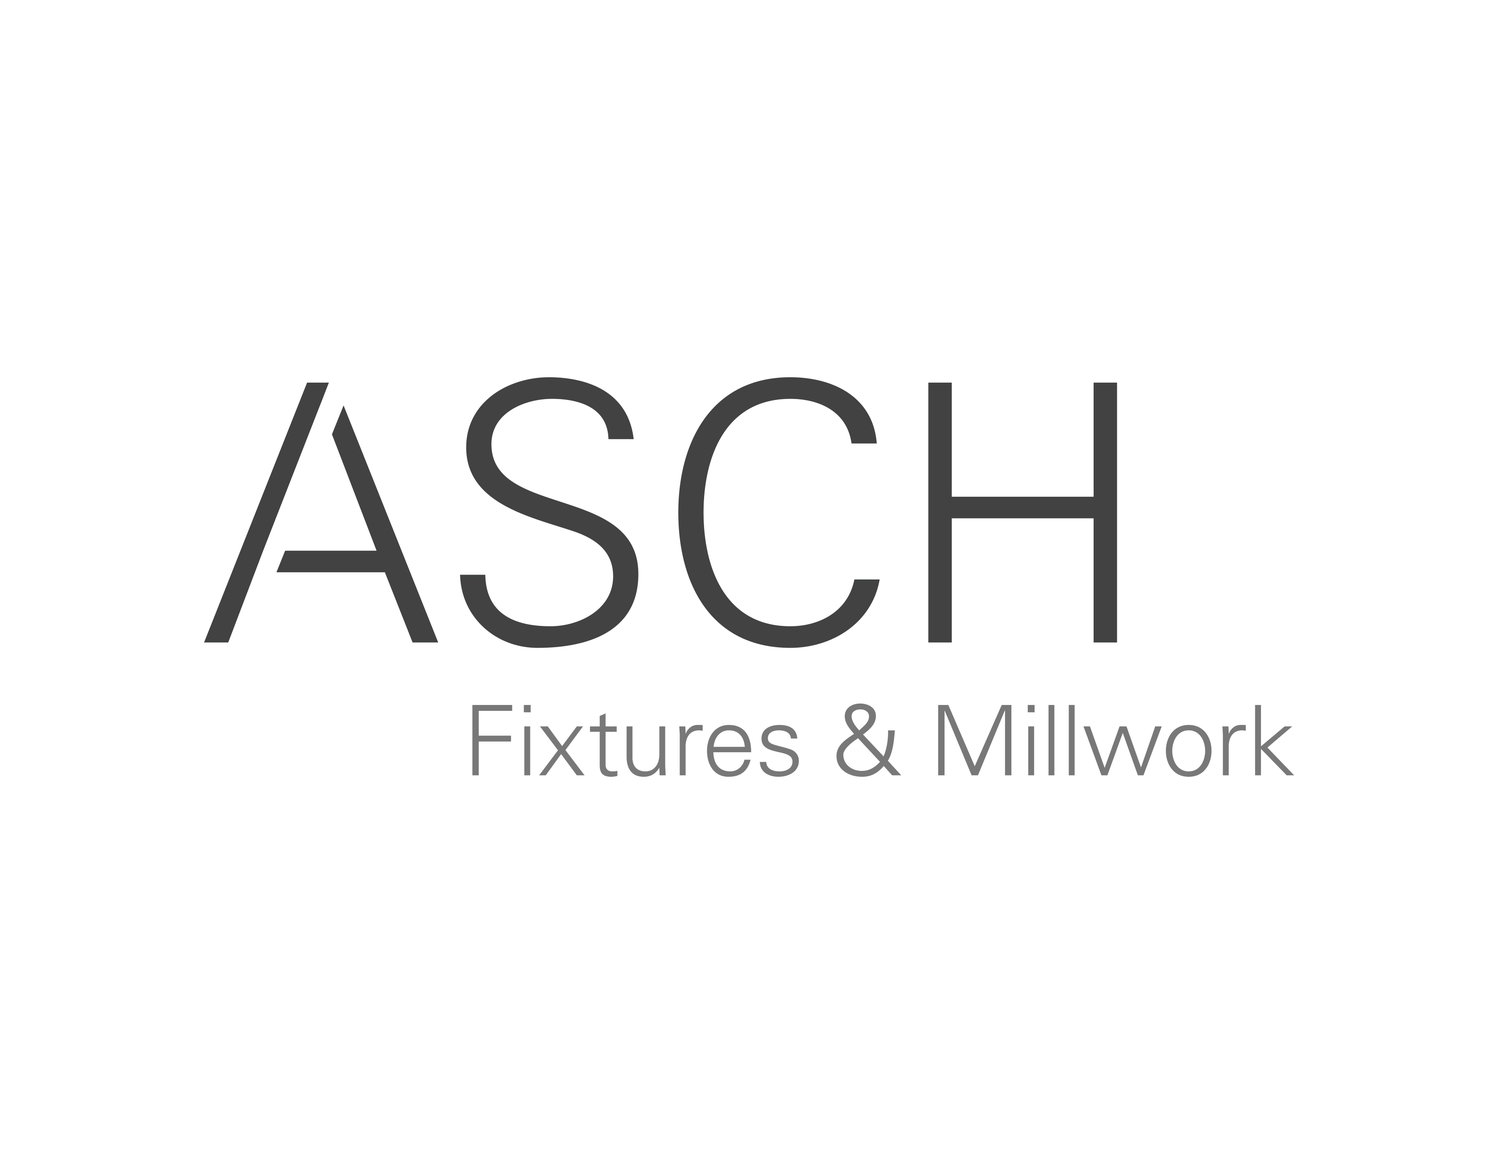 ASCH Fixtures and Millwork